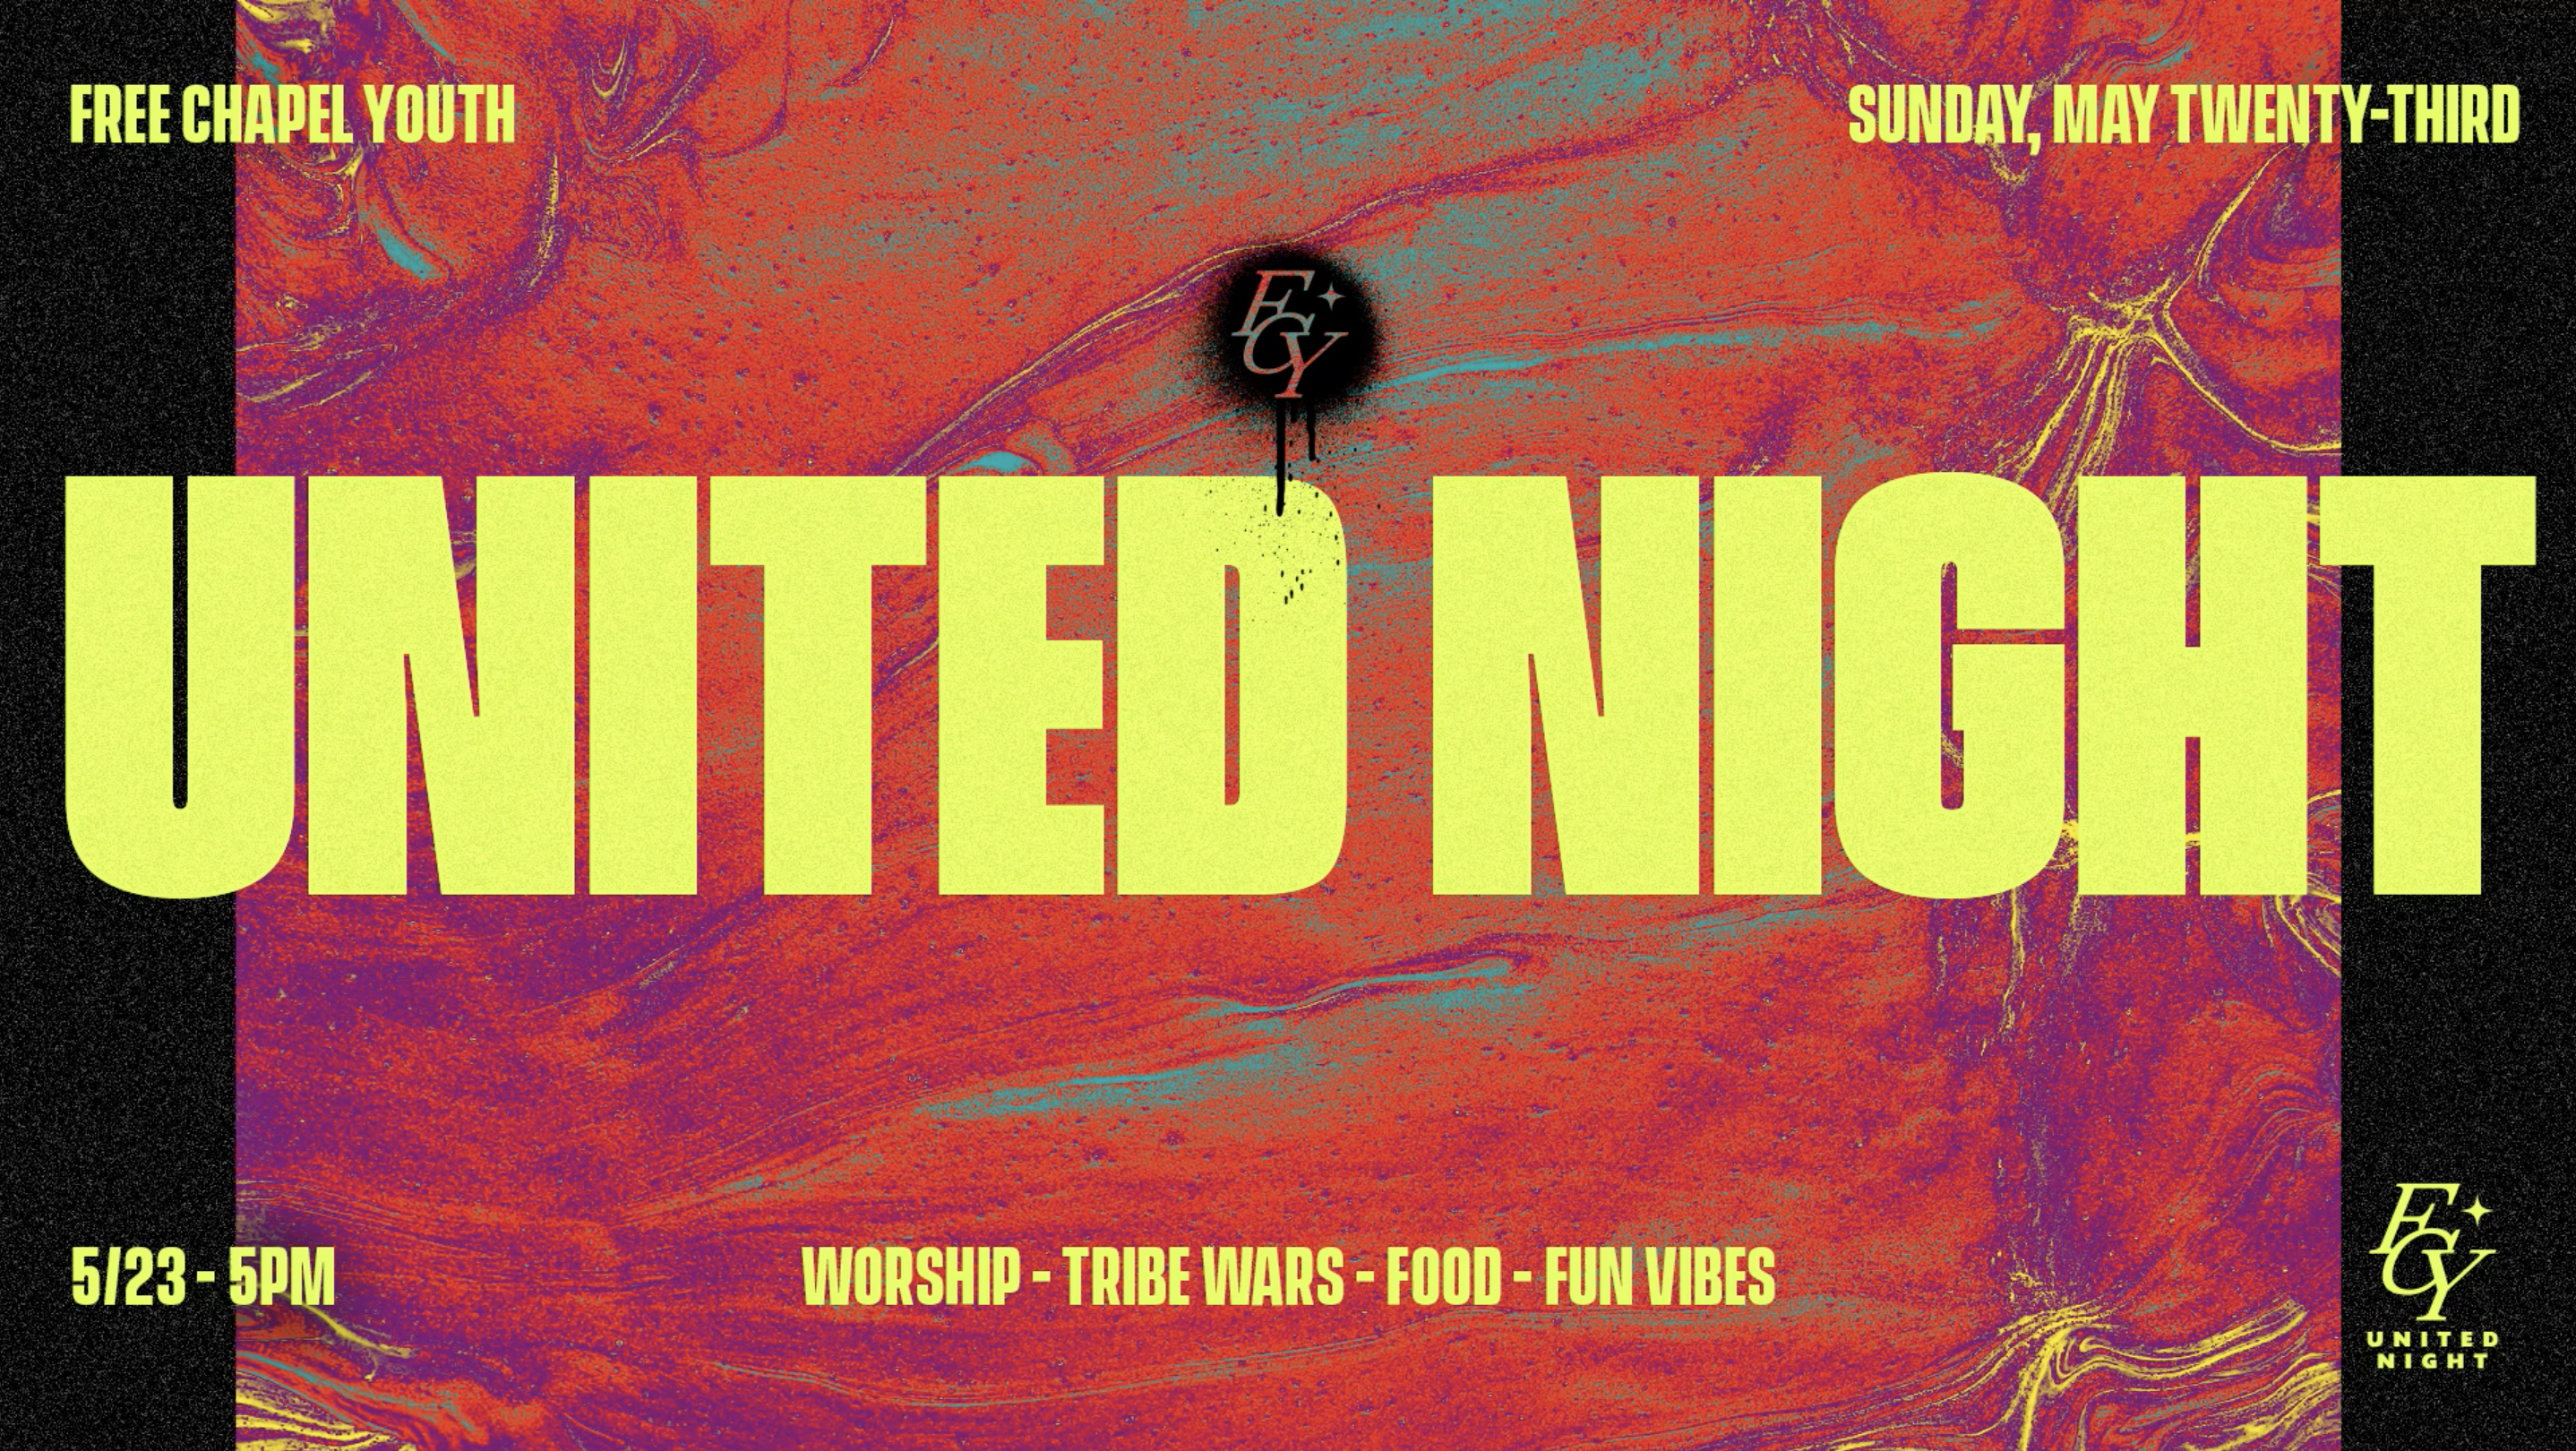 FCY United Forward Night at the Gainesville campus